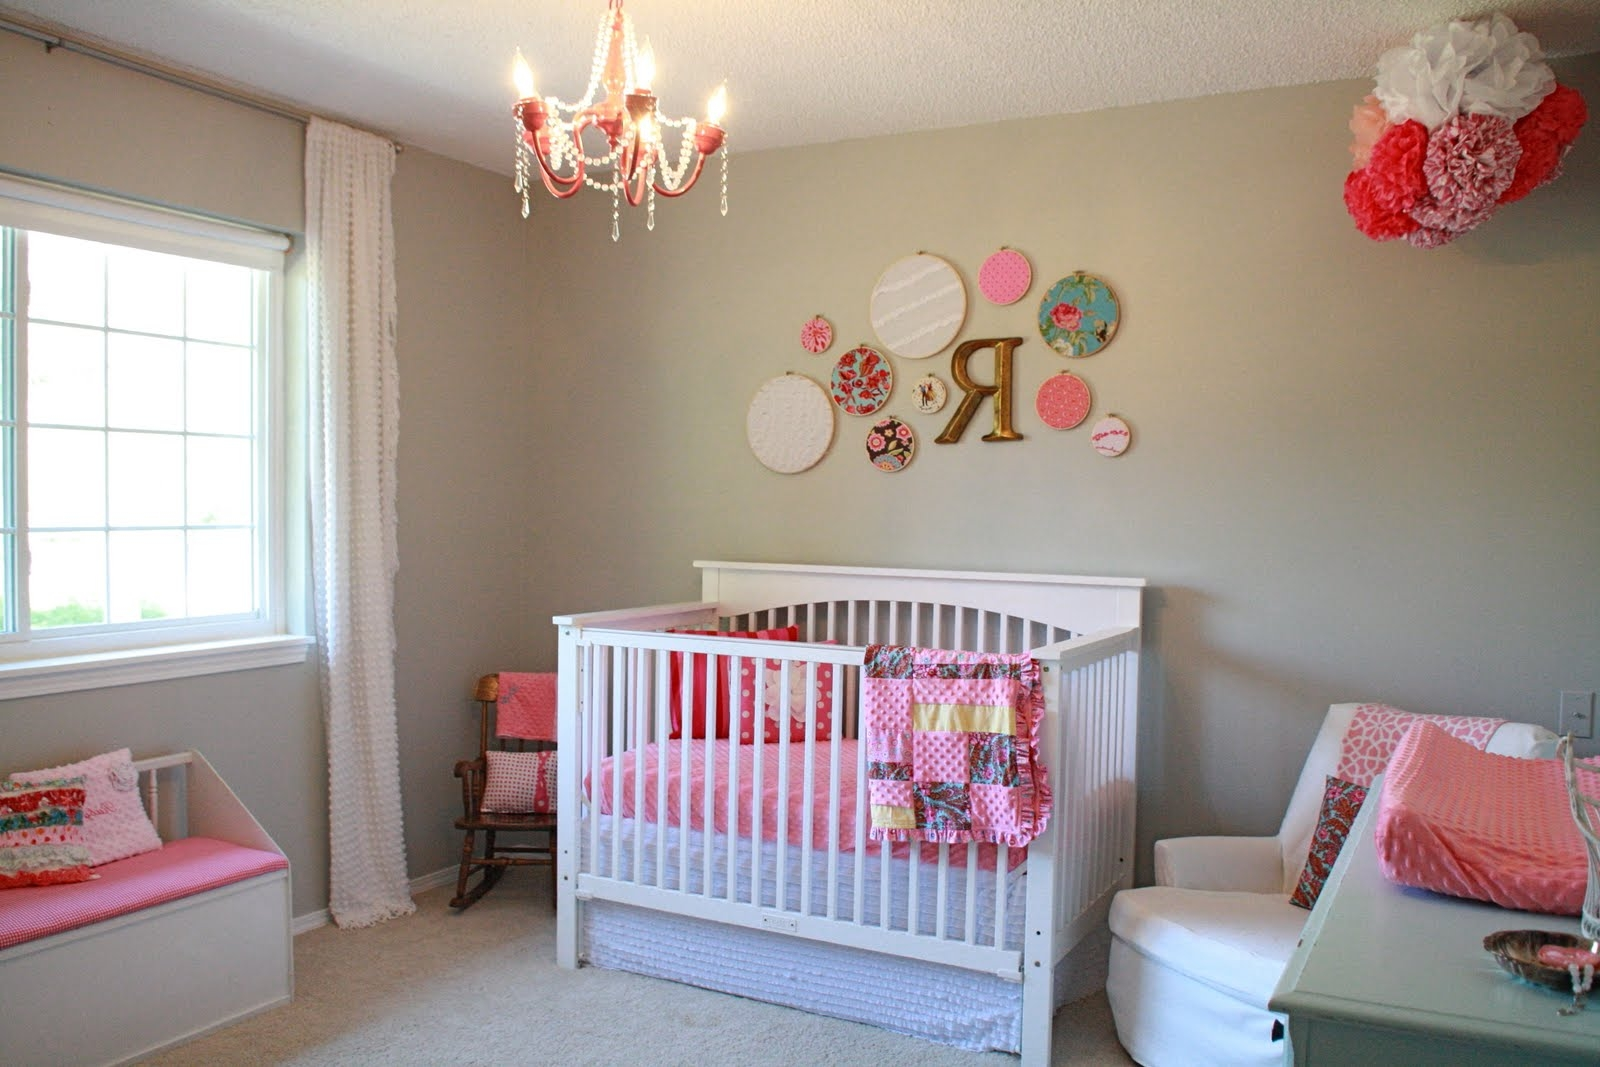 Baby girl room decor ideas for Toddler girl bedroom ideas